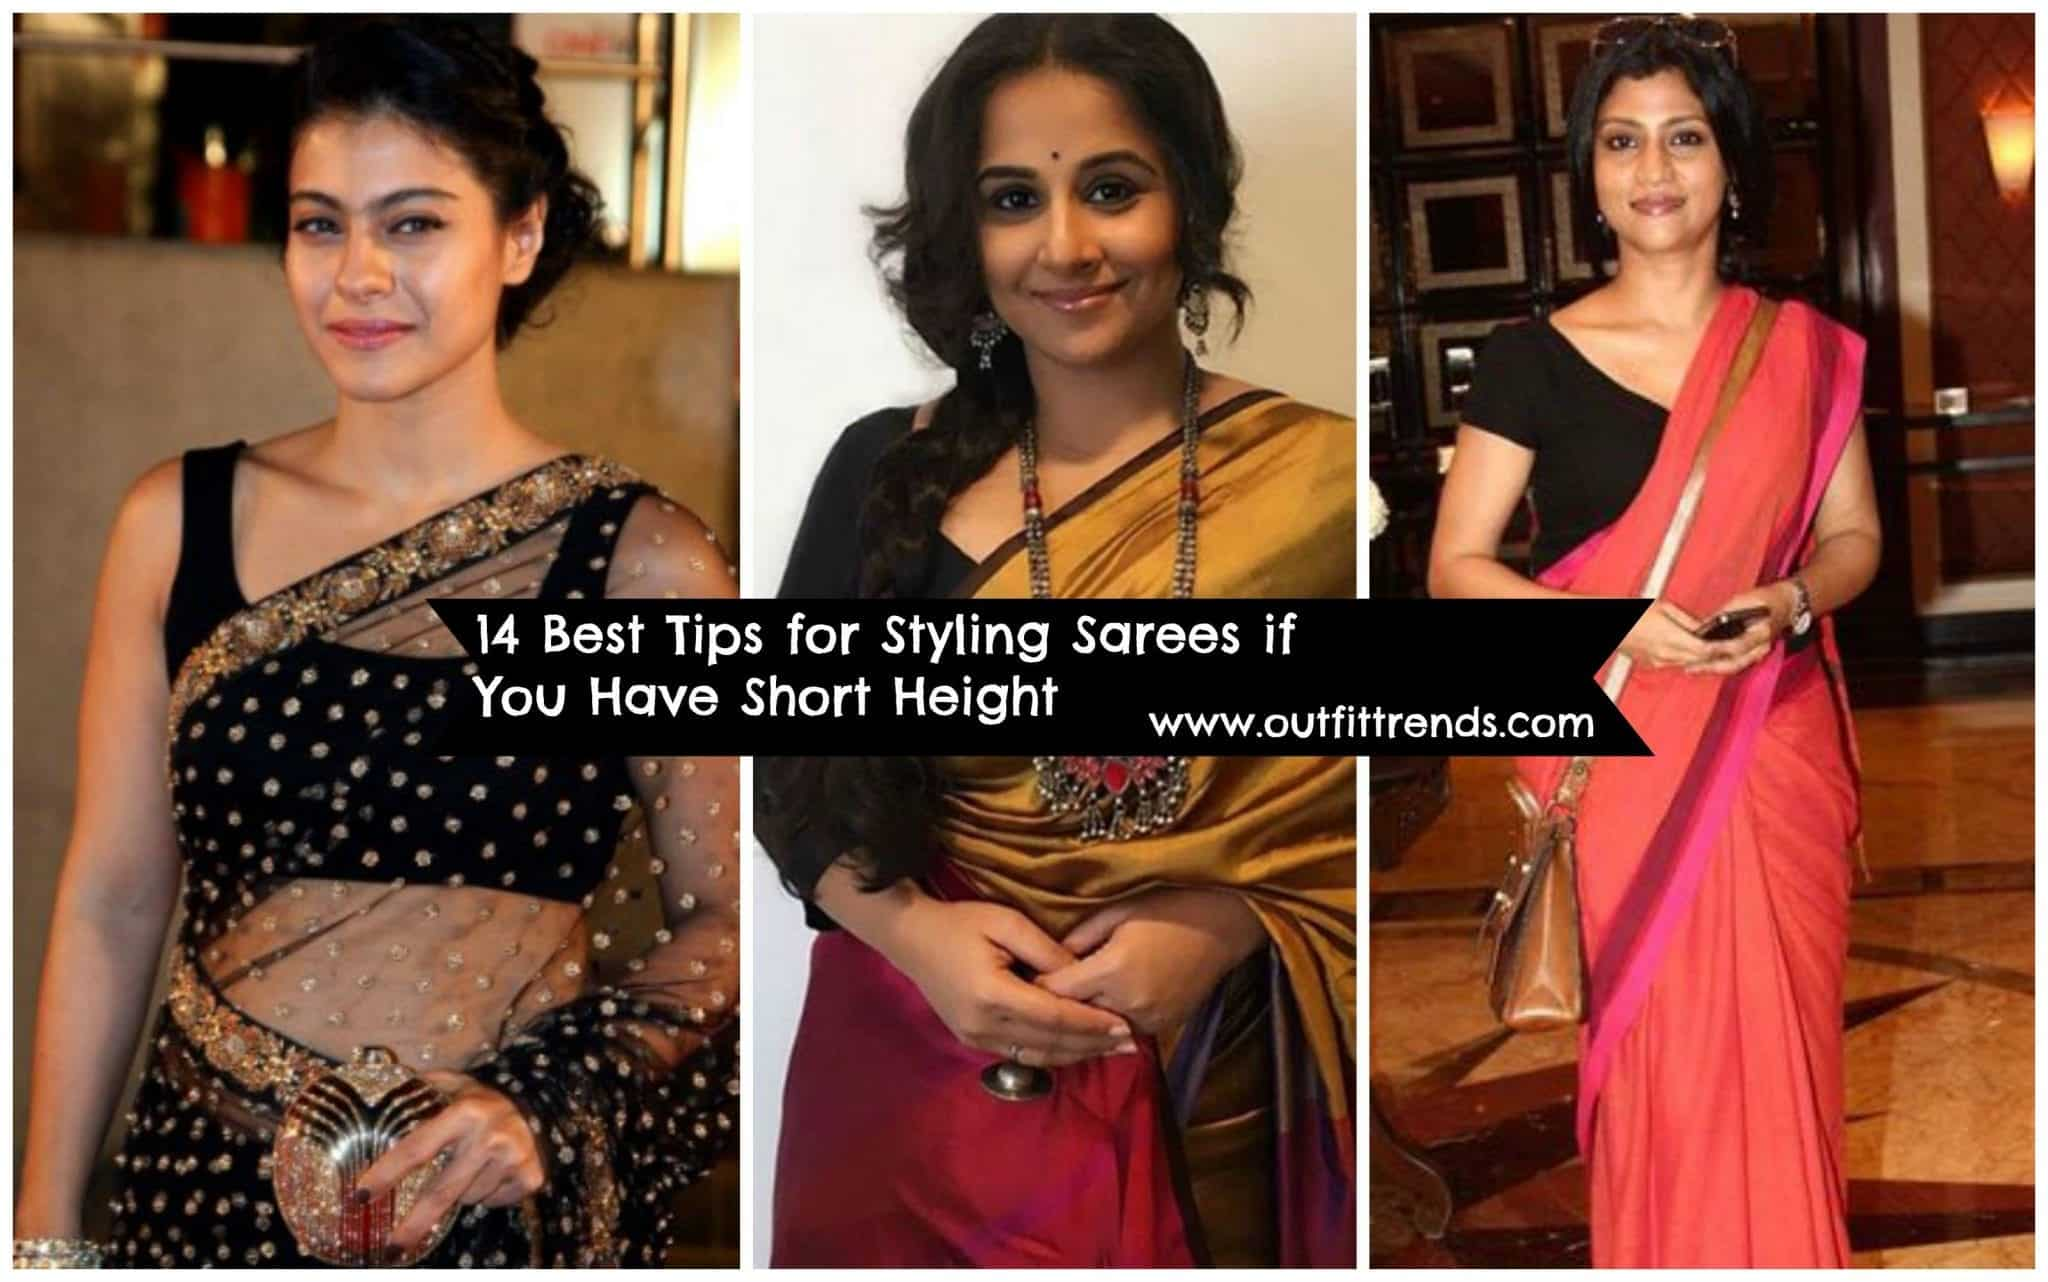 How to Wear Saree for Short Height? 14 Pro Tips for Short Girls